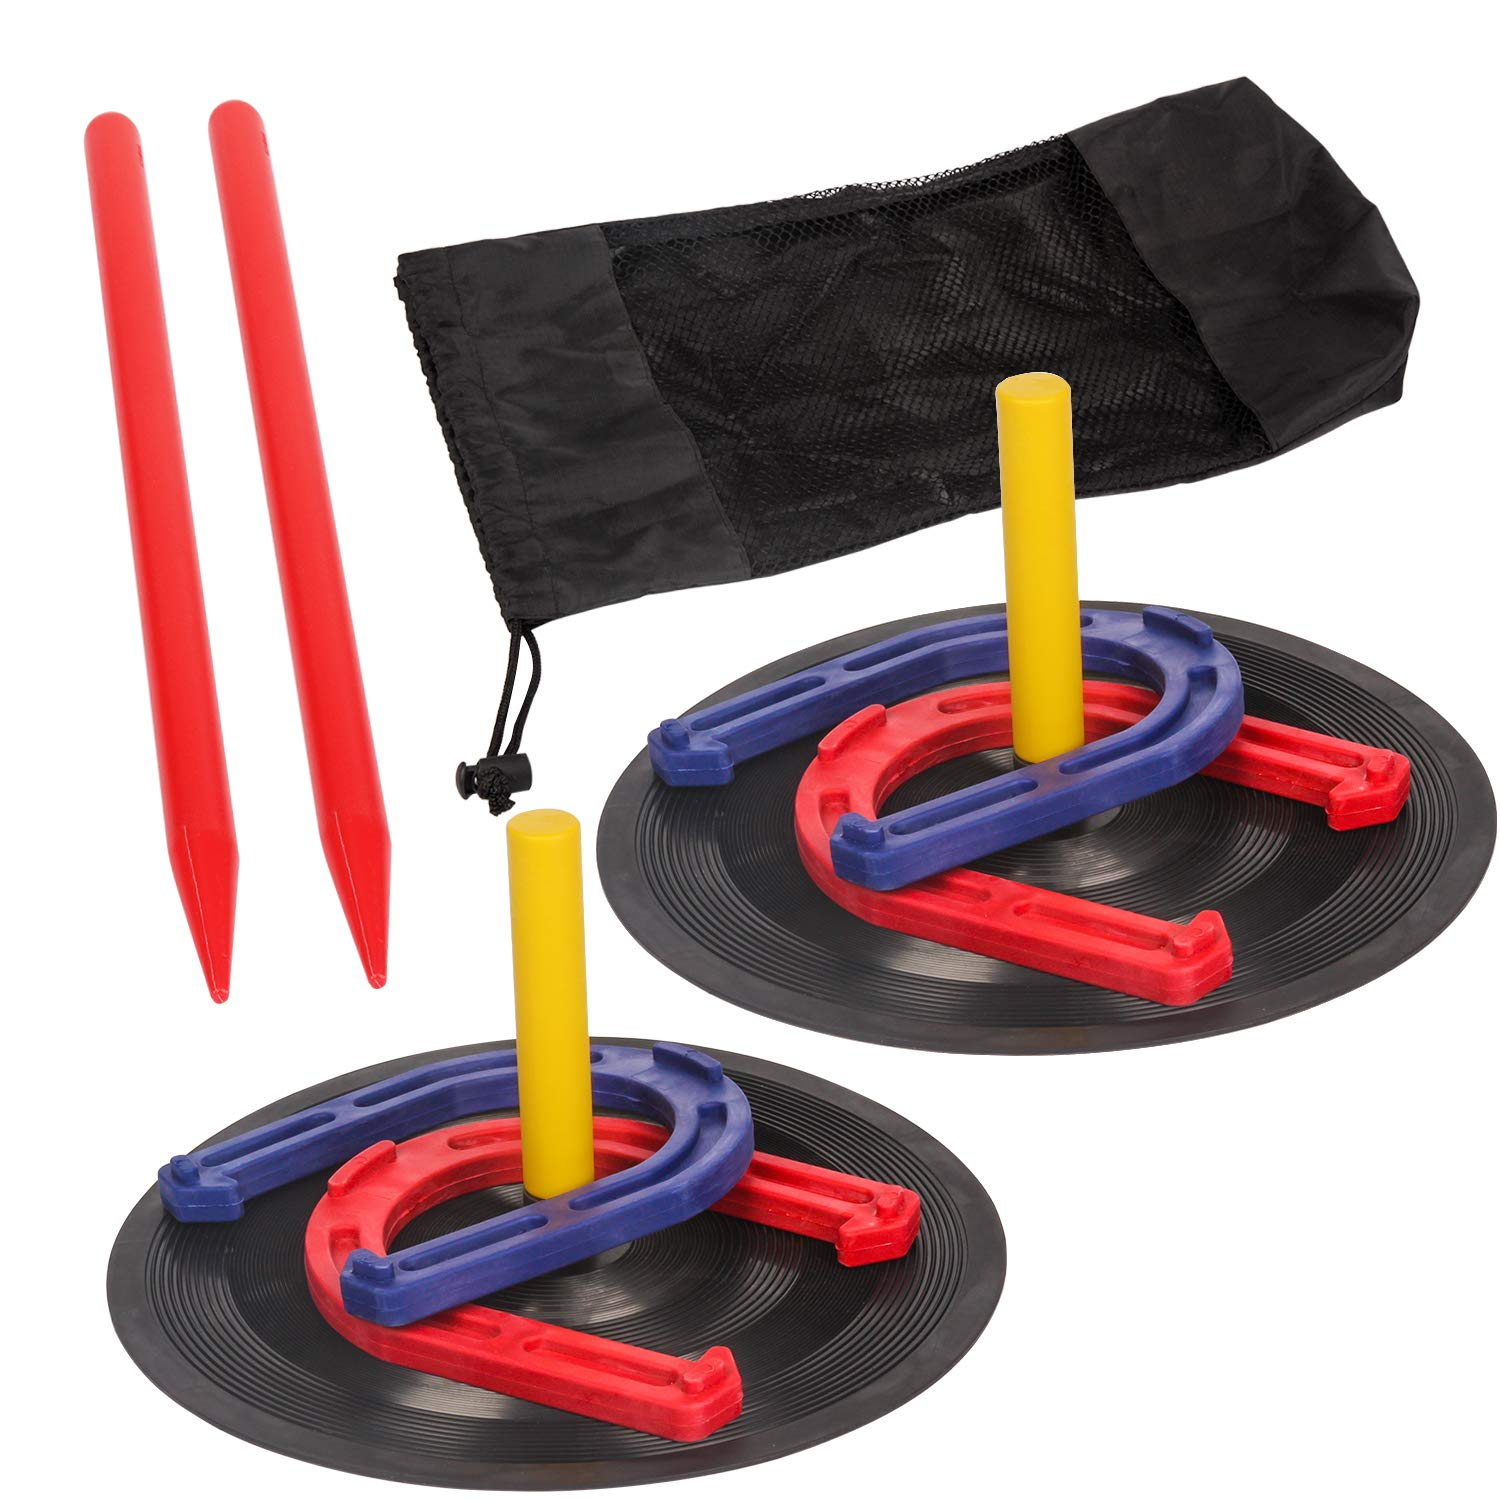 TOYSHARING Horseshoes Game Safety Rubber Horseshoe Set Durable Light Weight Horse Shoes Toss Game Toy for Kids Camping Yard Lawn Outdoor Sports